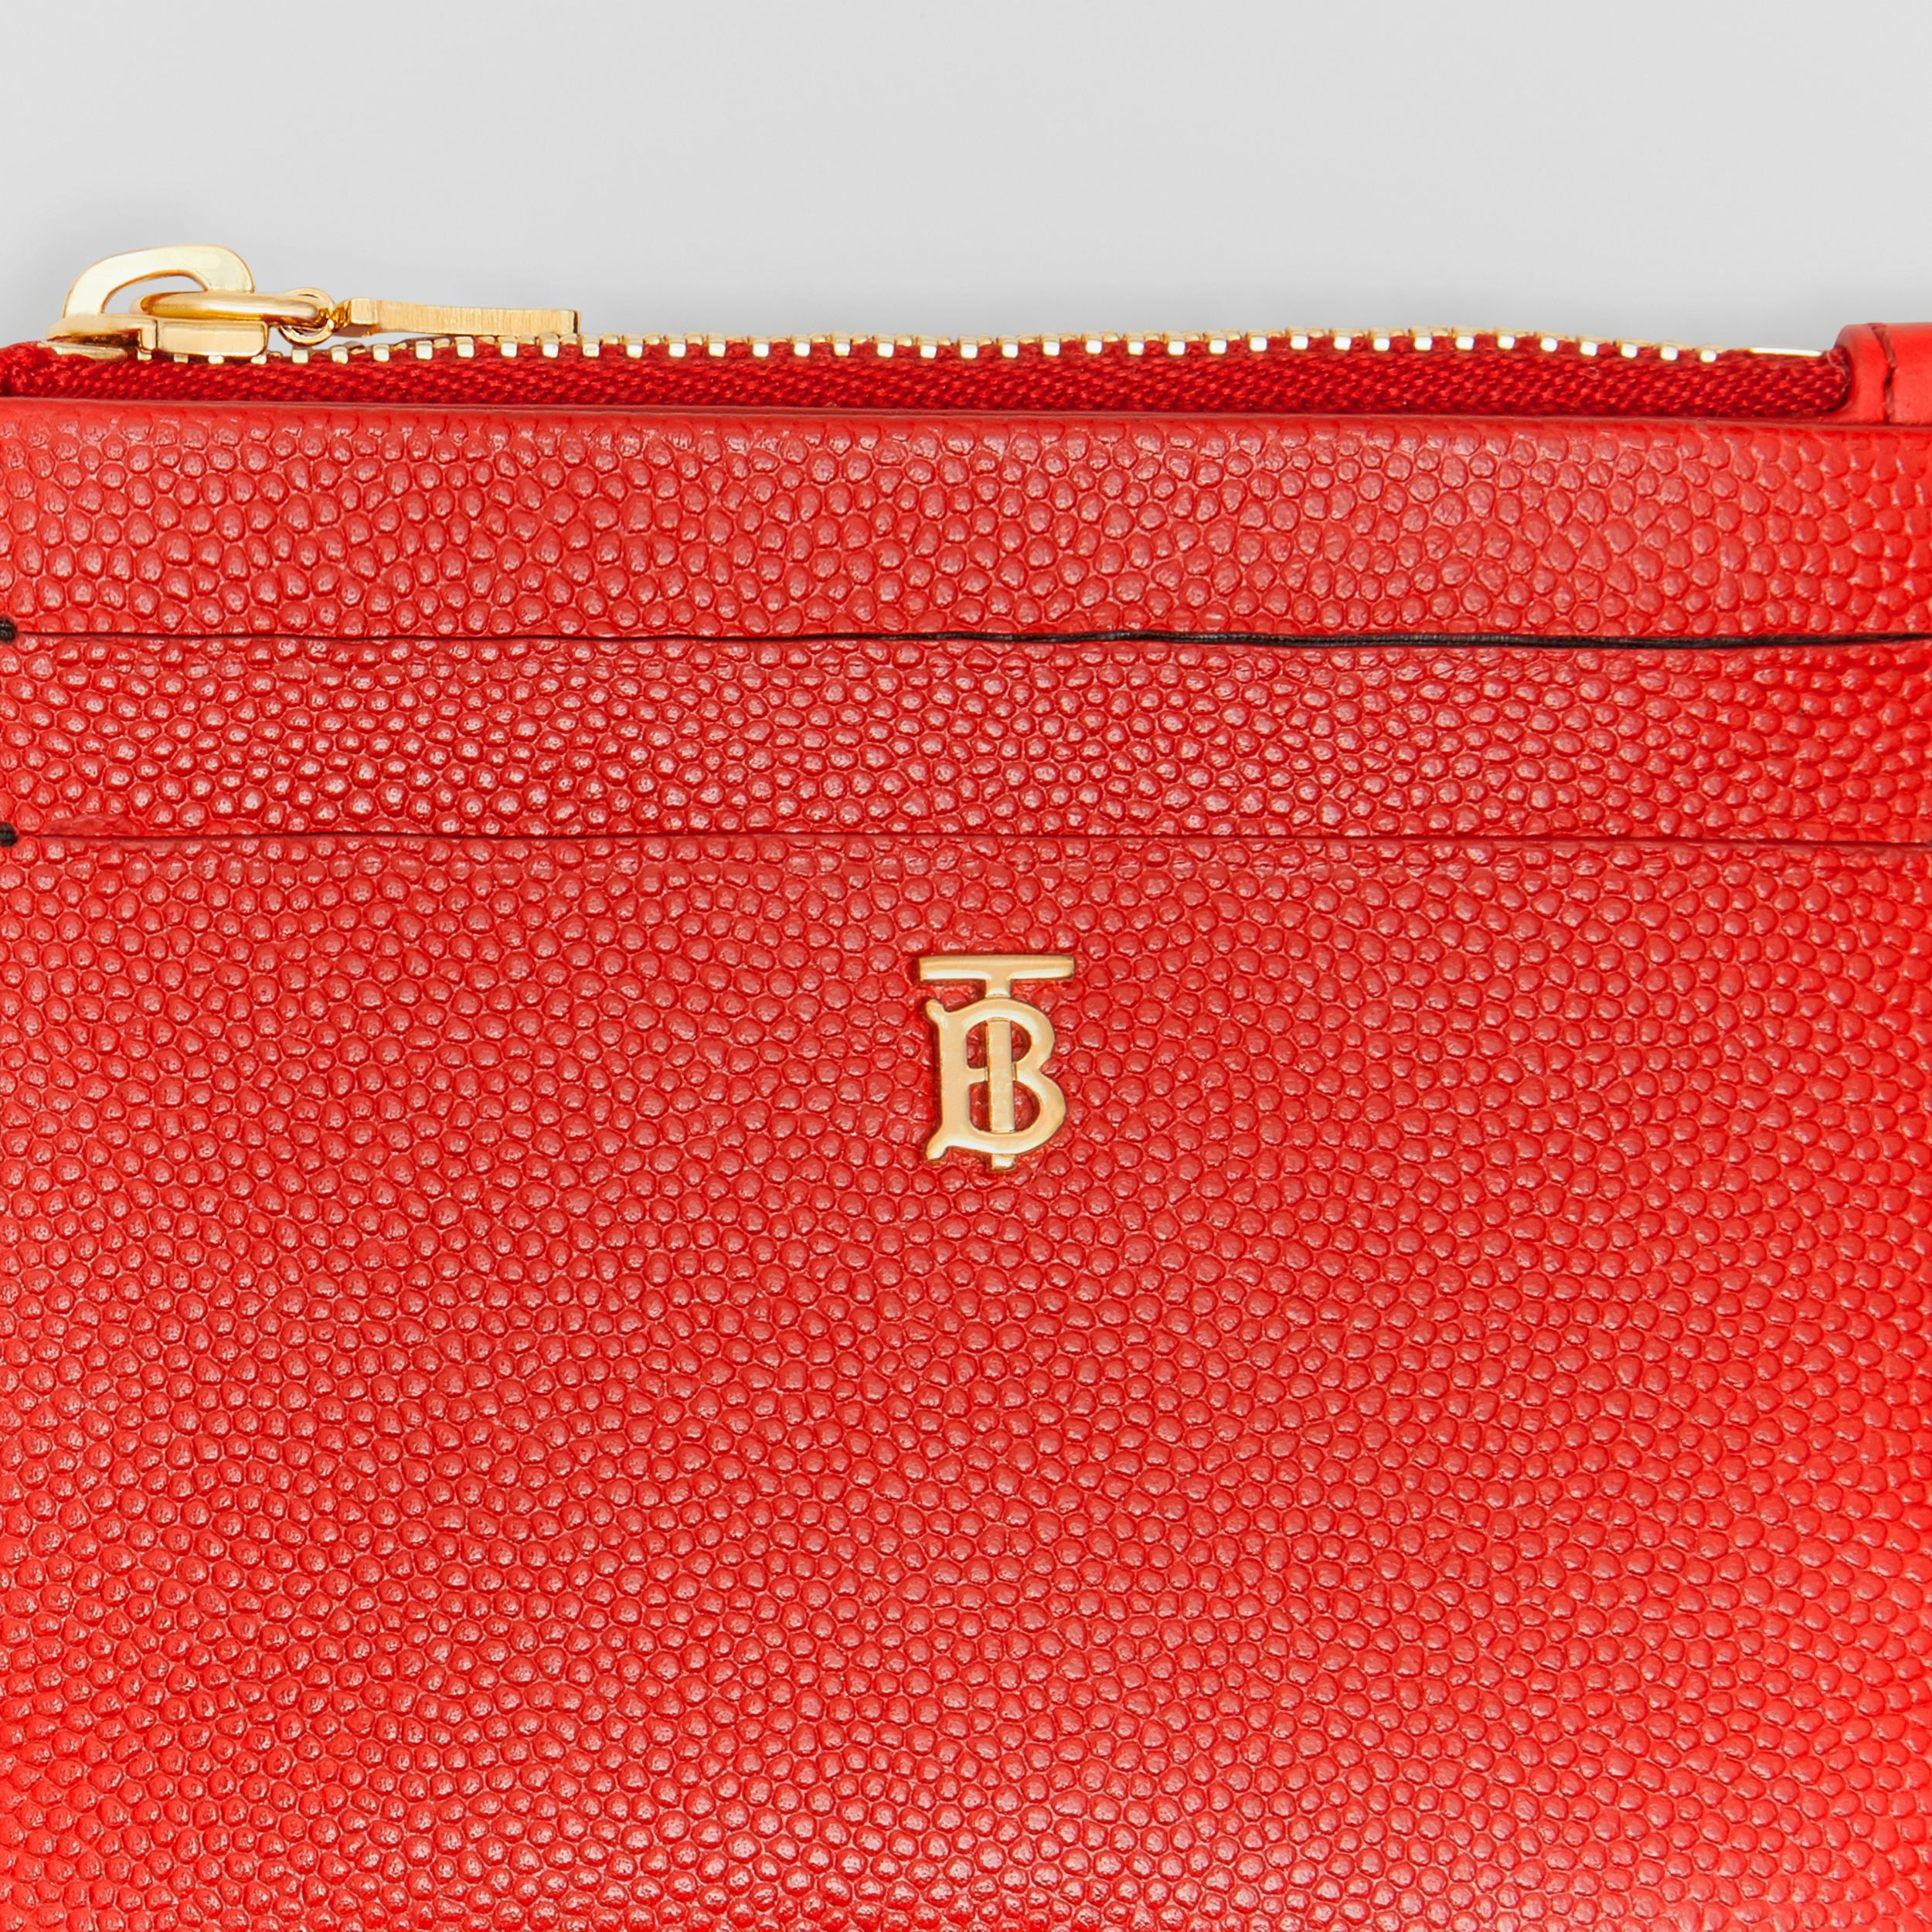 Monogram Motif Grainy Leather Zip Card Case in Bright Red - Women | Burberry - 2